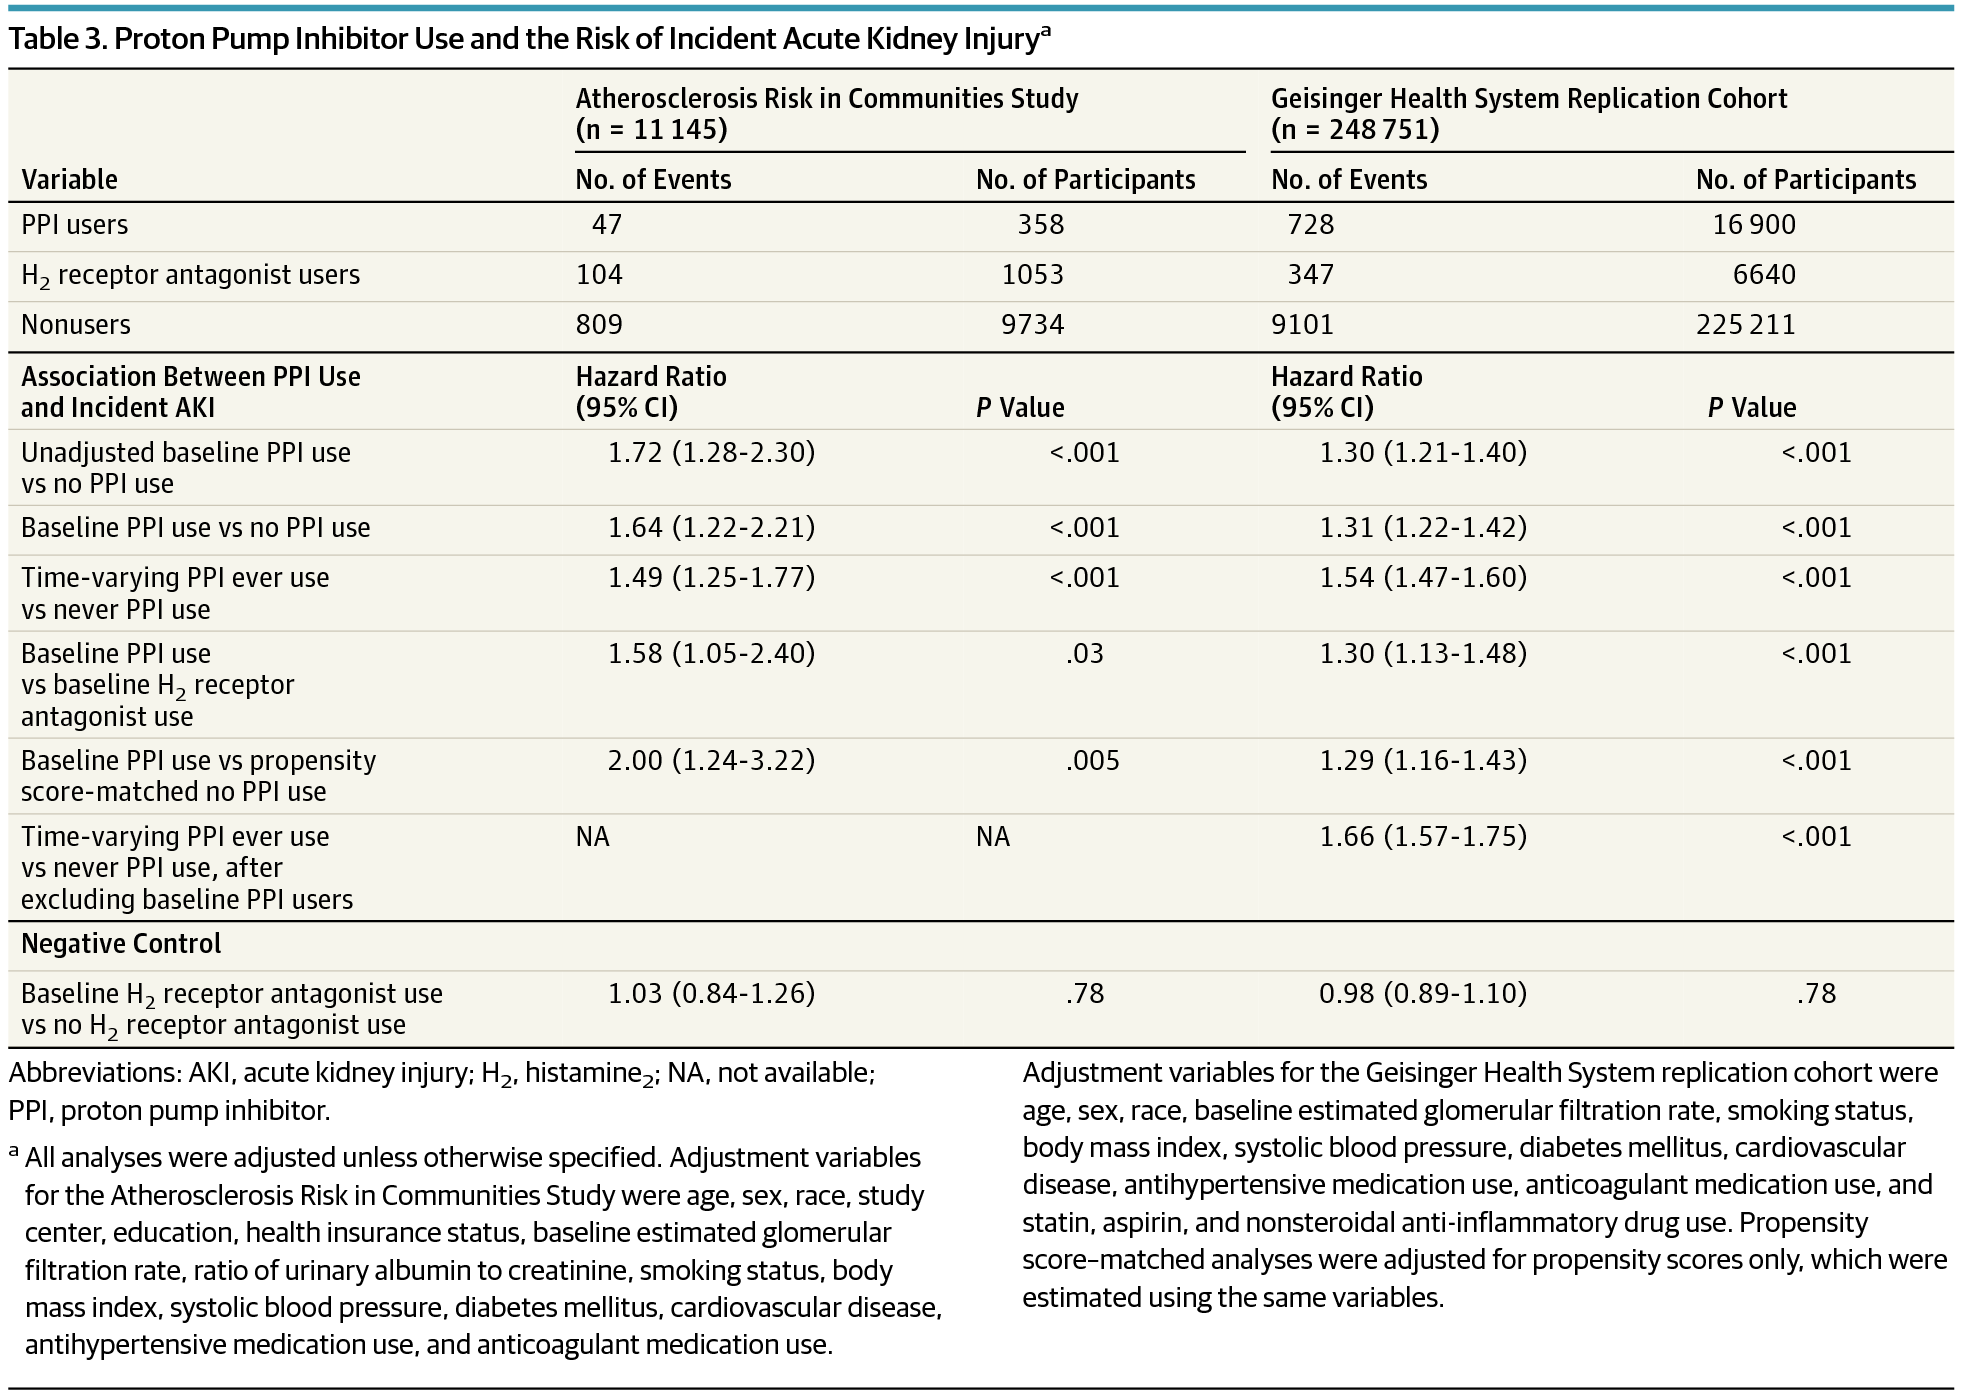 Proton Pump Inhibitor Use And The Risk Of Incident Acute Kidney Injurya